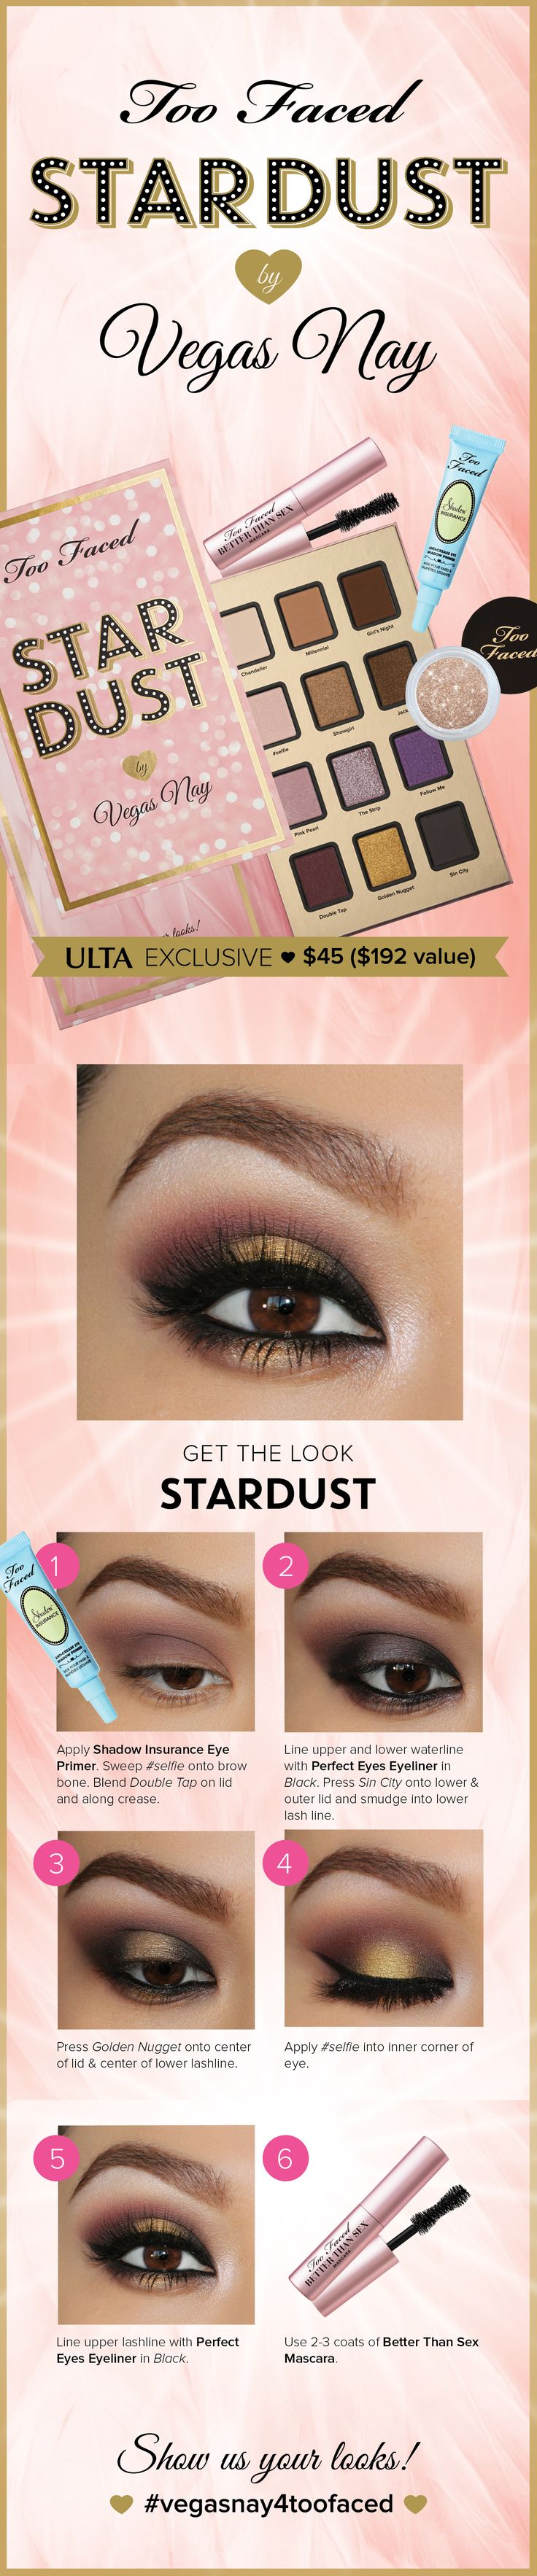 Get the look with the Too Faced Stardust by Vegas Nay Collection! #toofaced